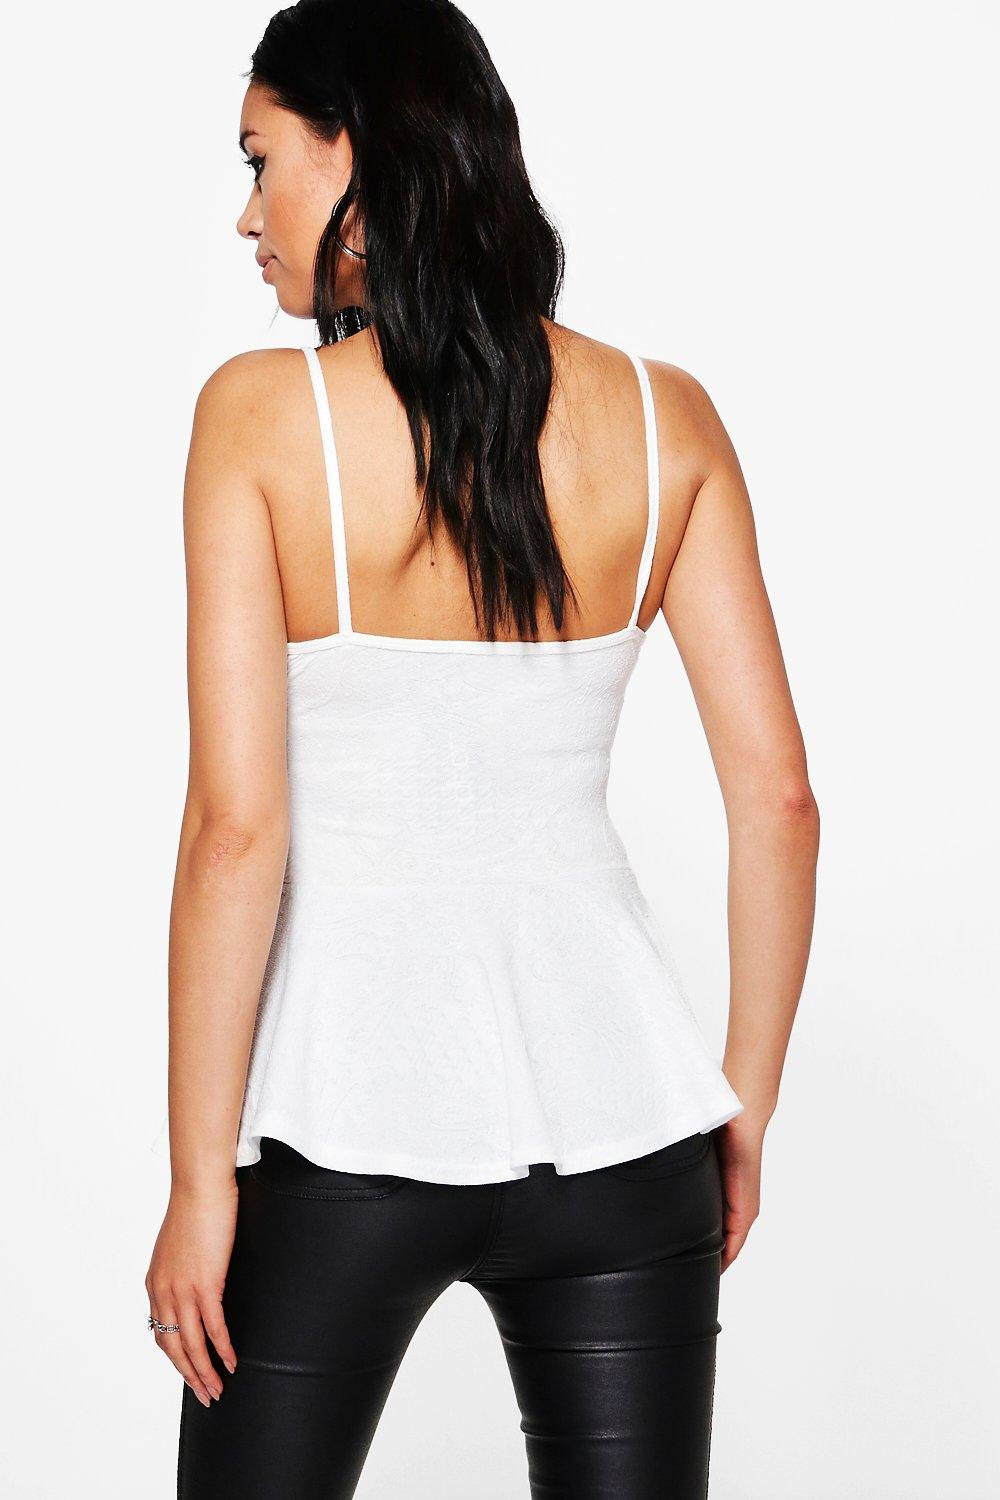 NEW-Boohoo-Womens-Aria-Textured-Jacquard-Peplum-Top-in-Polyester